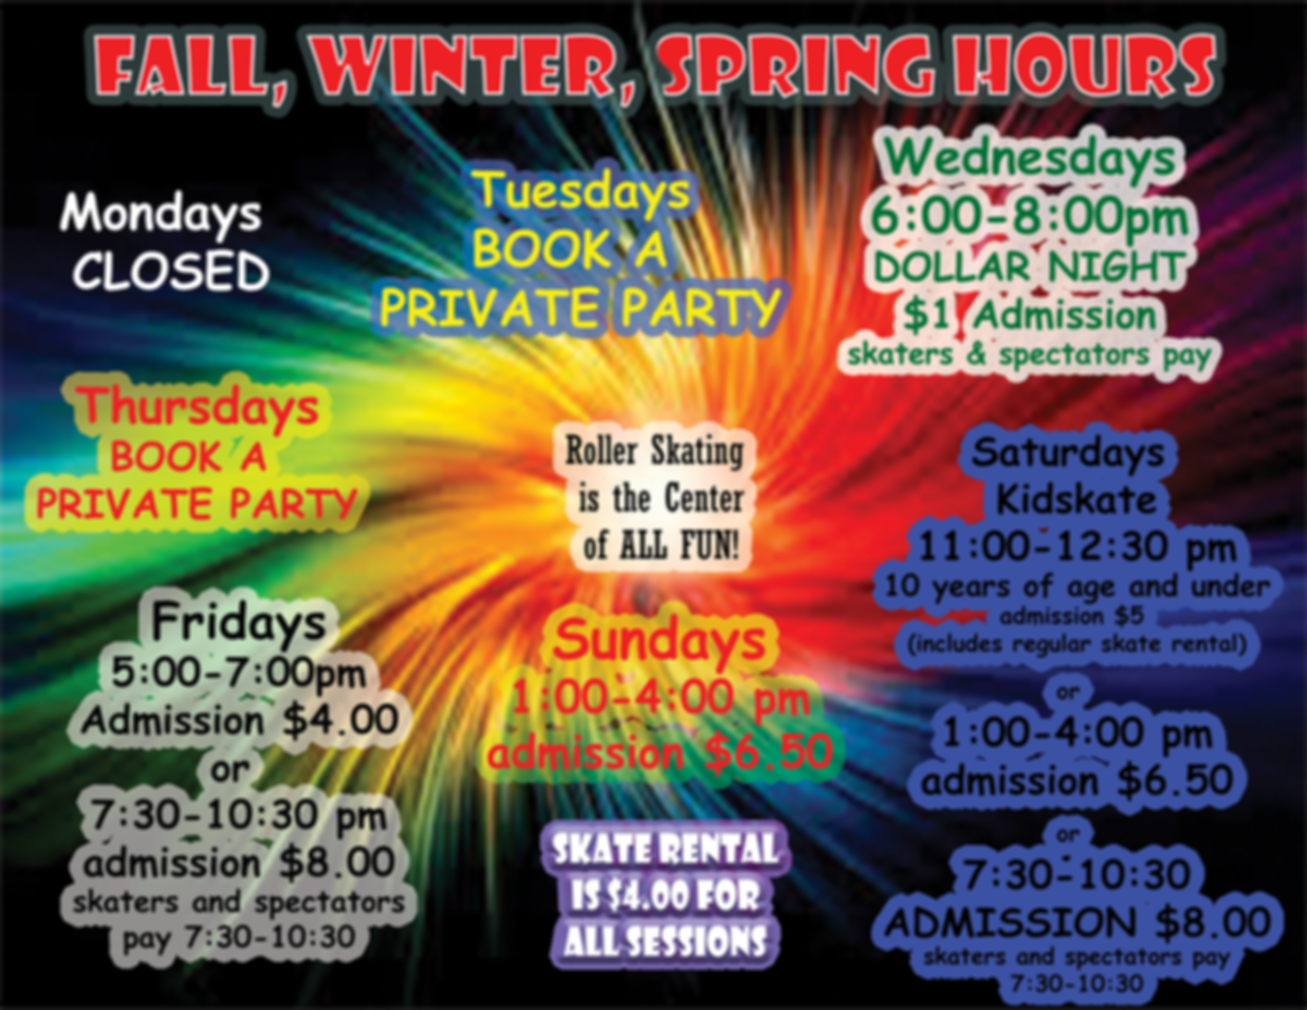 Fall winter spring hours-Recovered.png